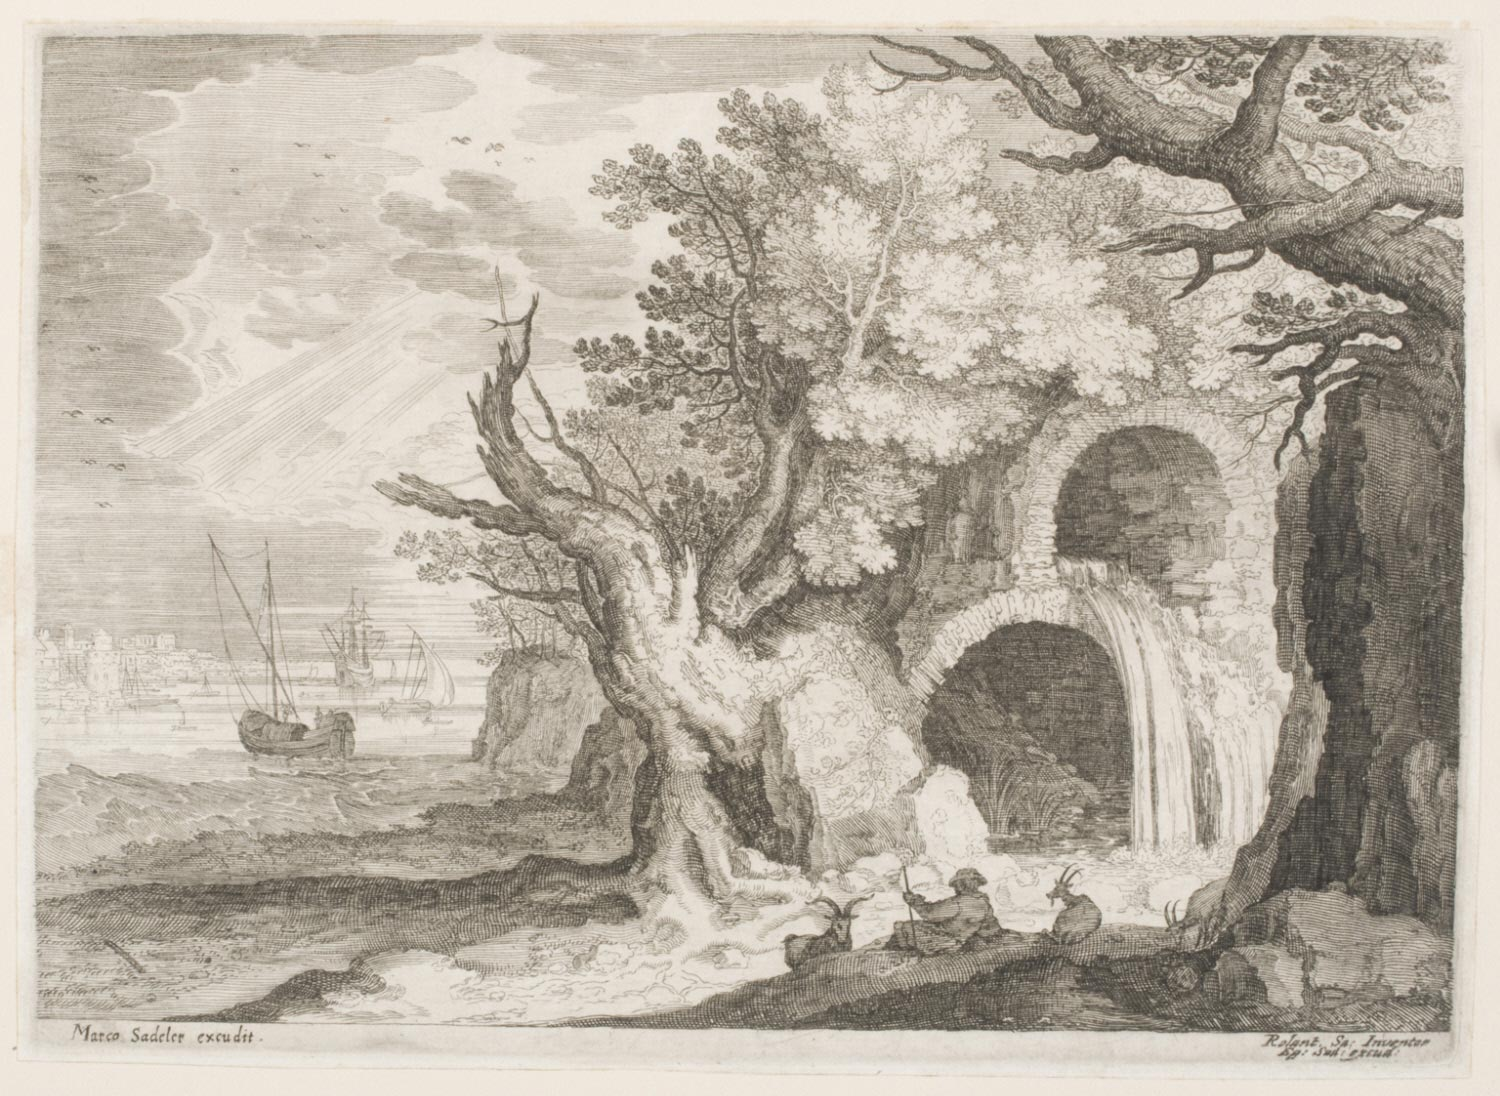 Aquaduct with a Waterfall